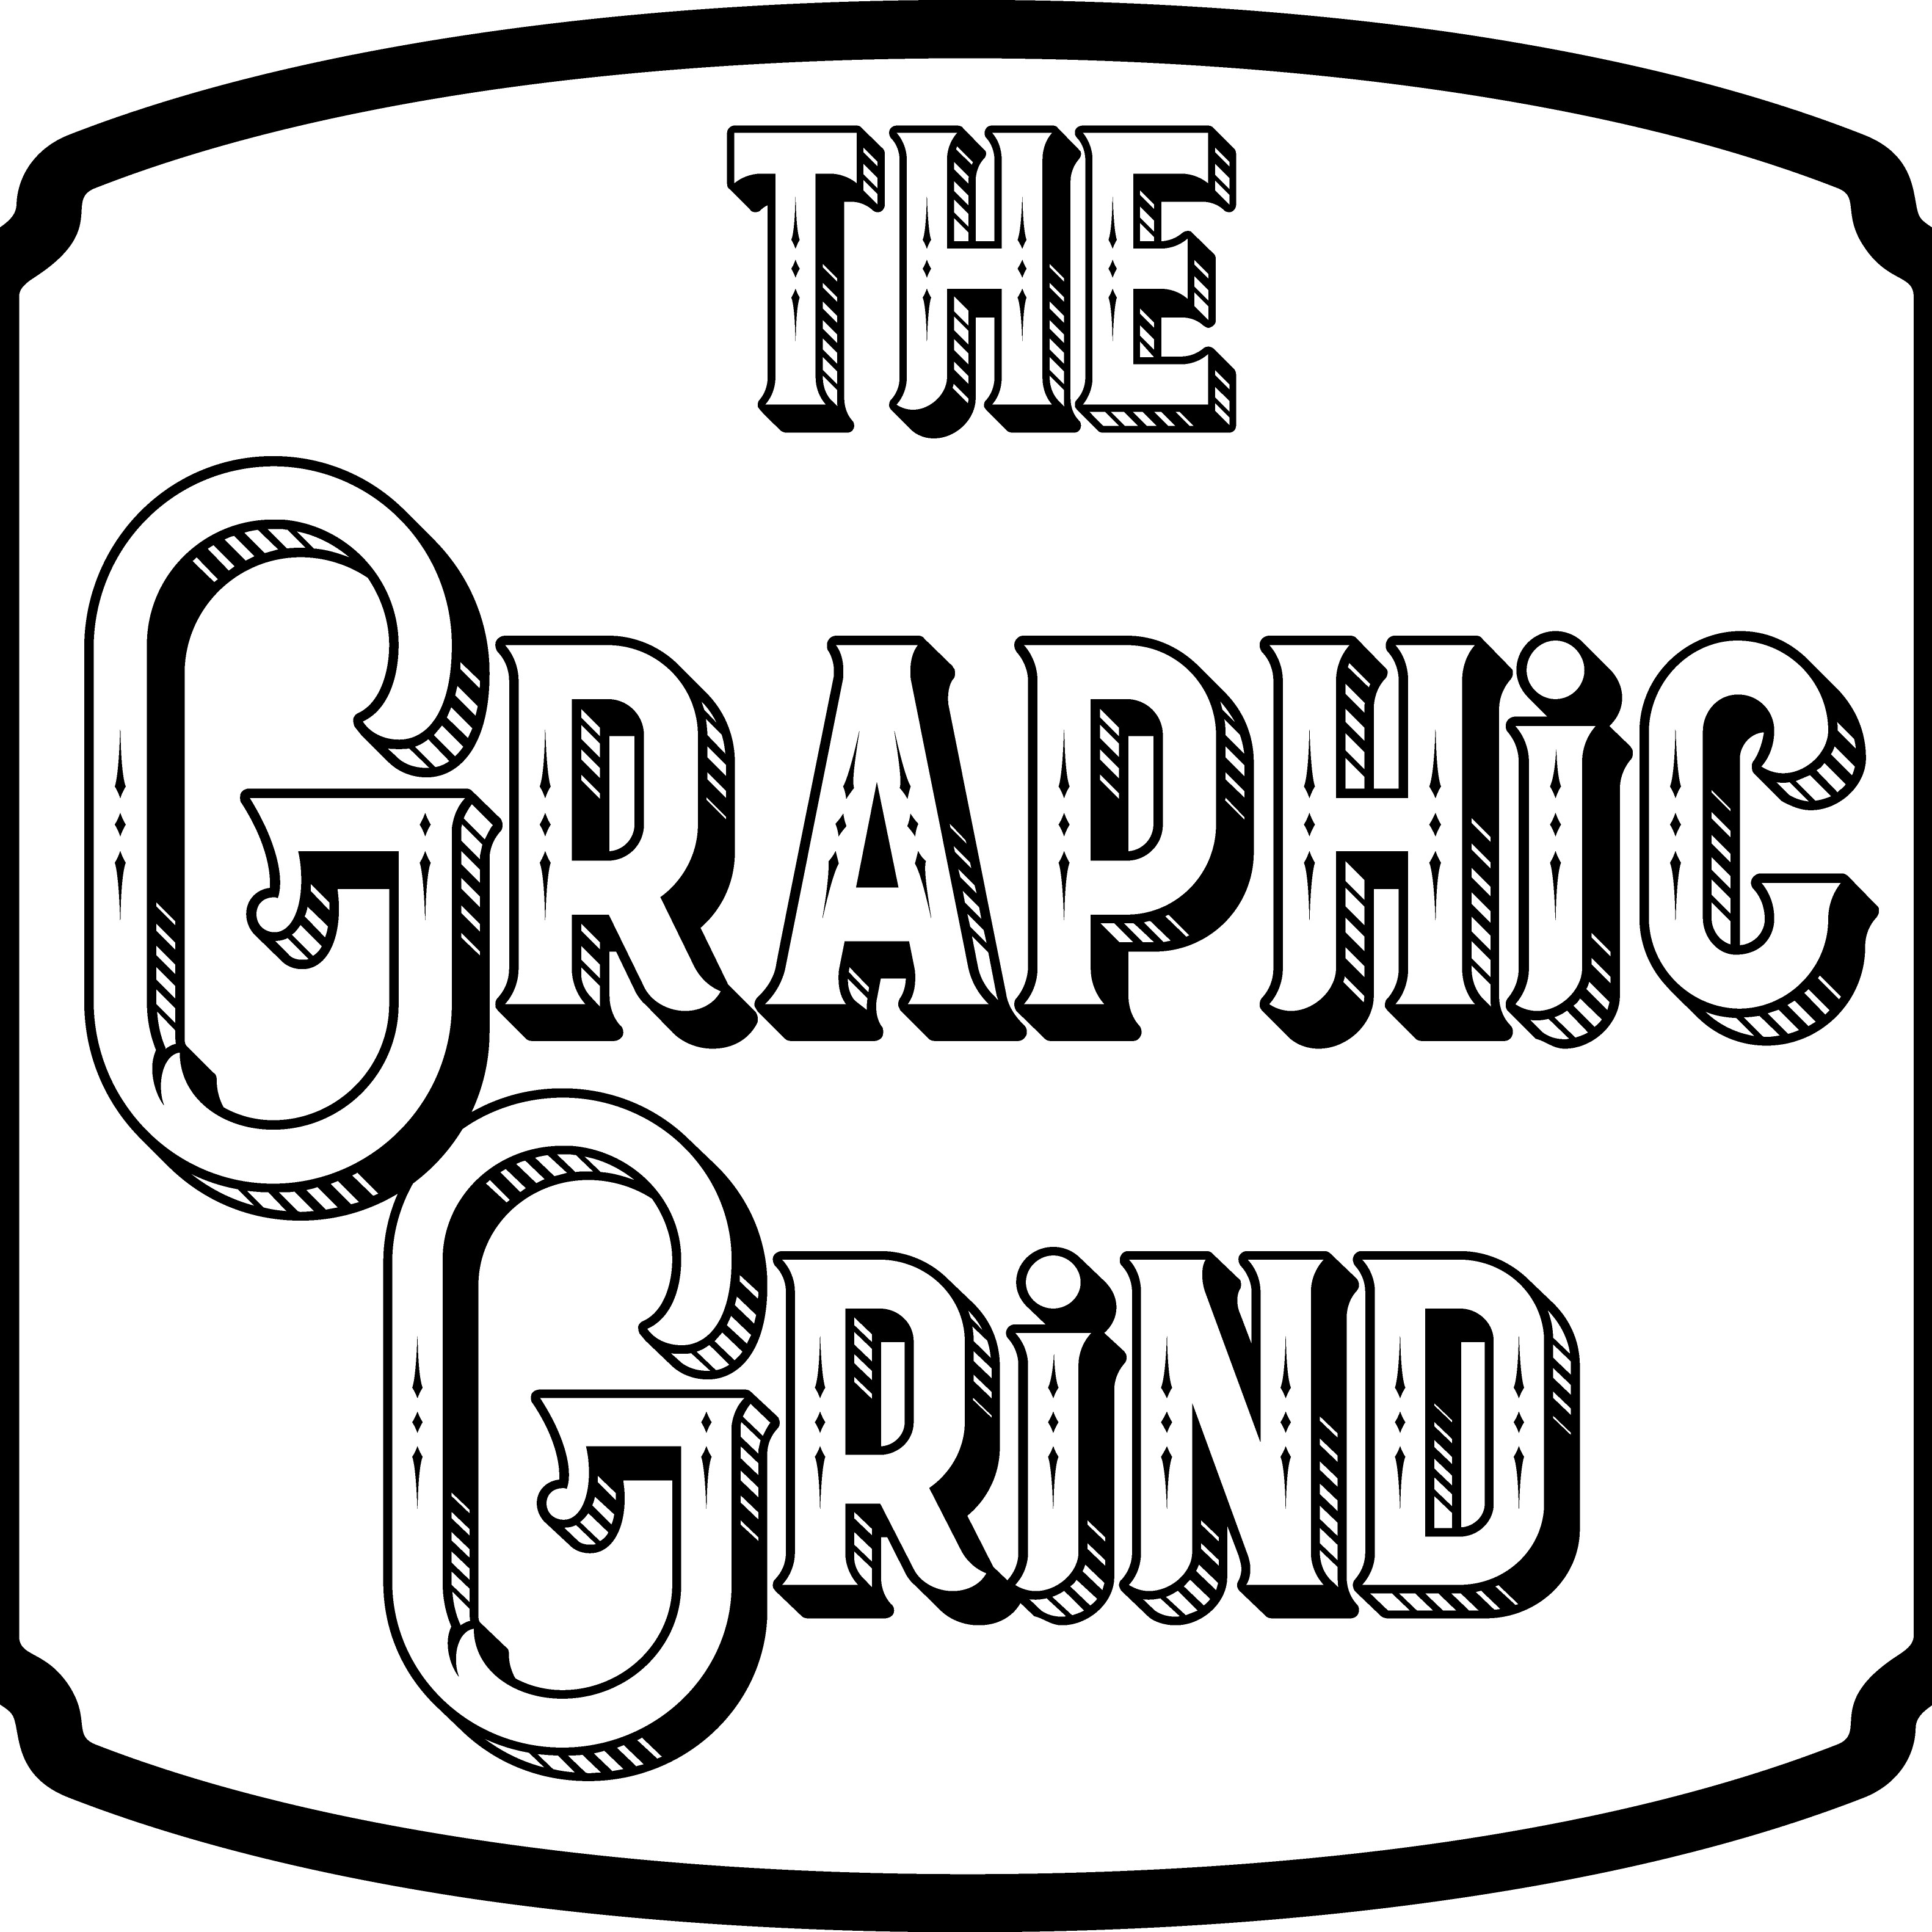 The Graphic Grind's profile picture